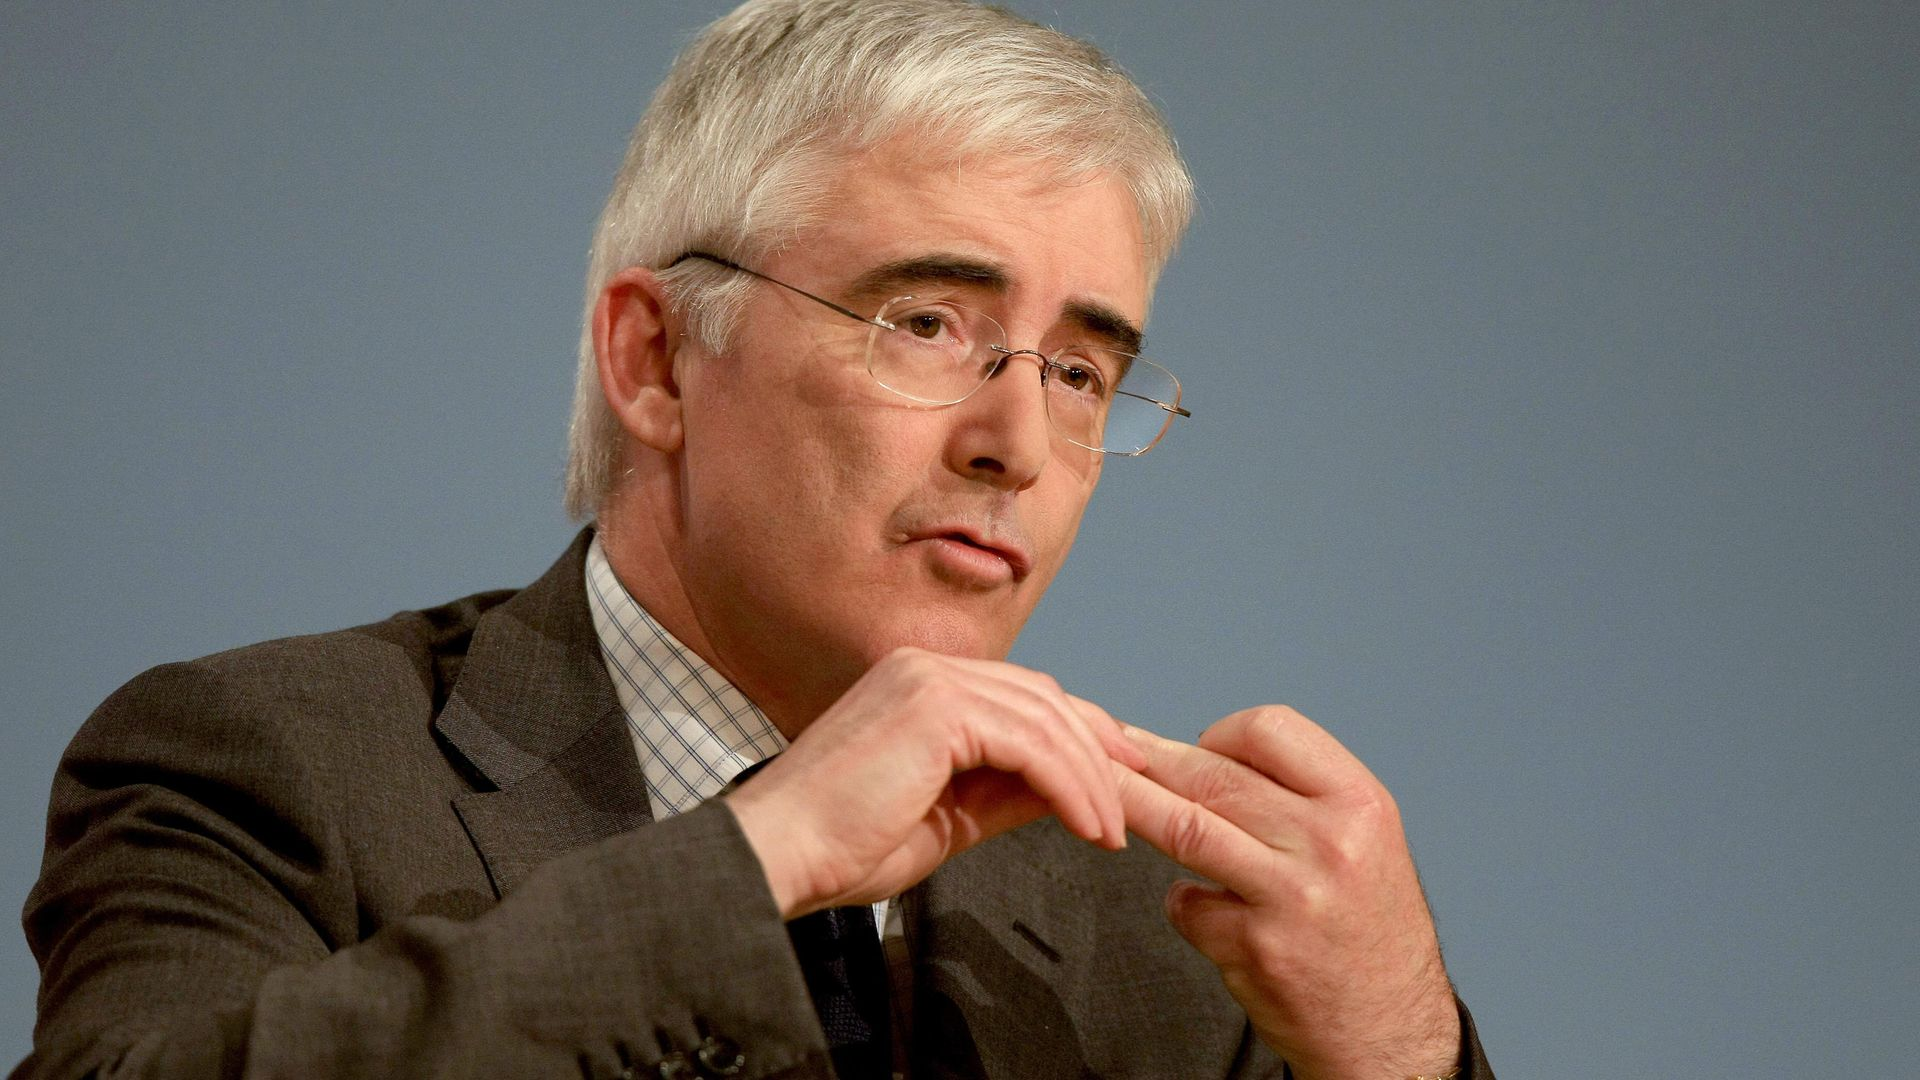 Lord Freud at the Annual Conservative Party Conference in Birmingham - Credit: PA